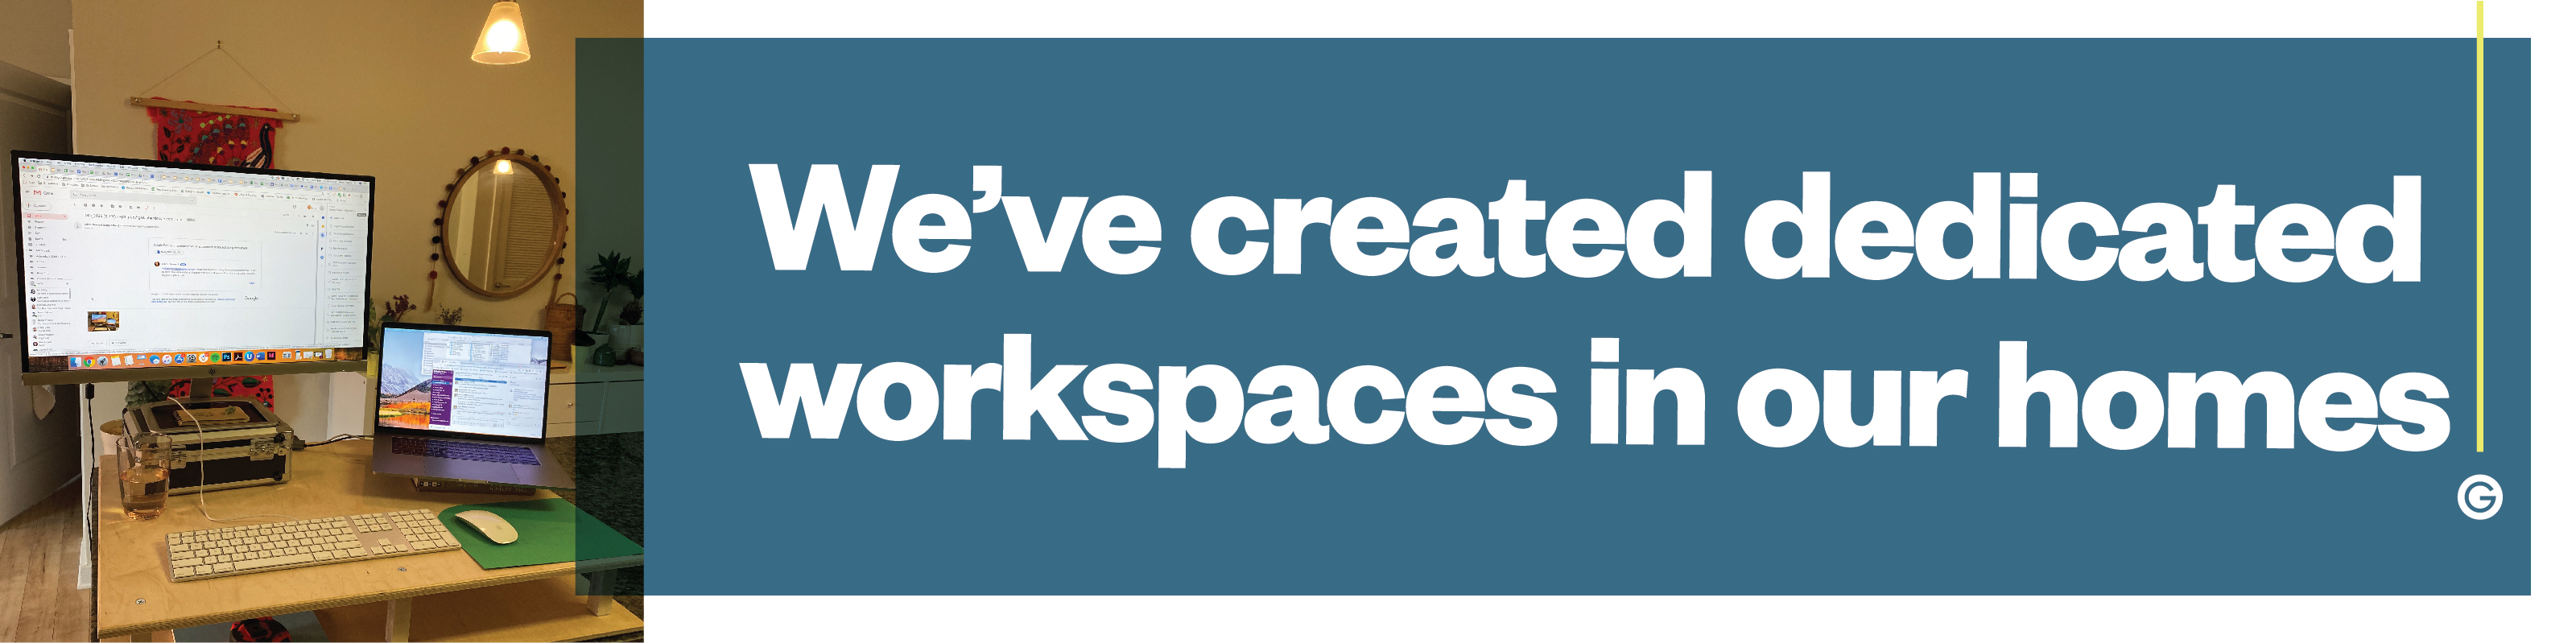 We've created a dedicated workspace in our homes